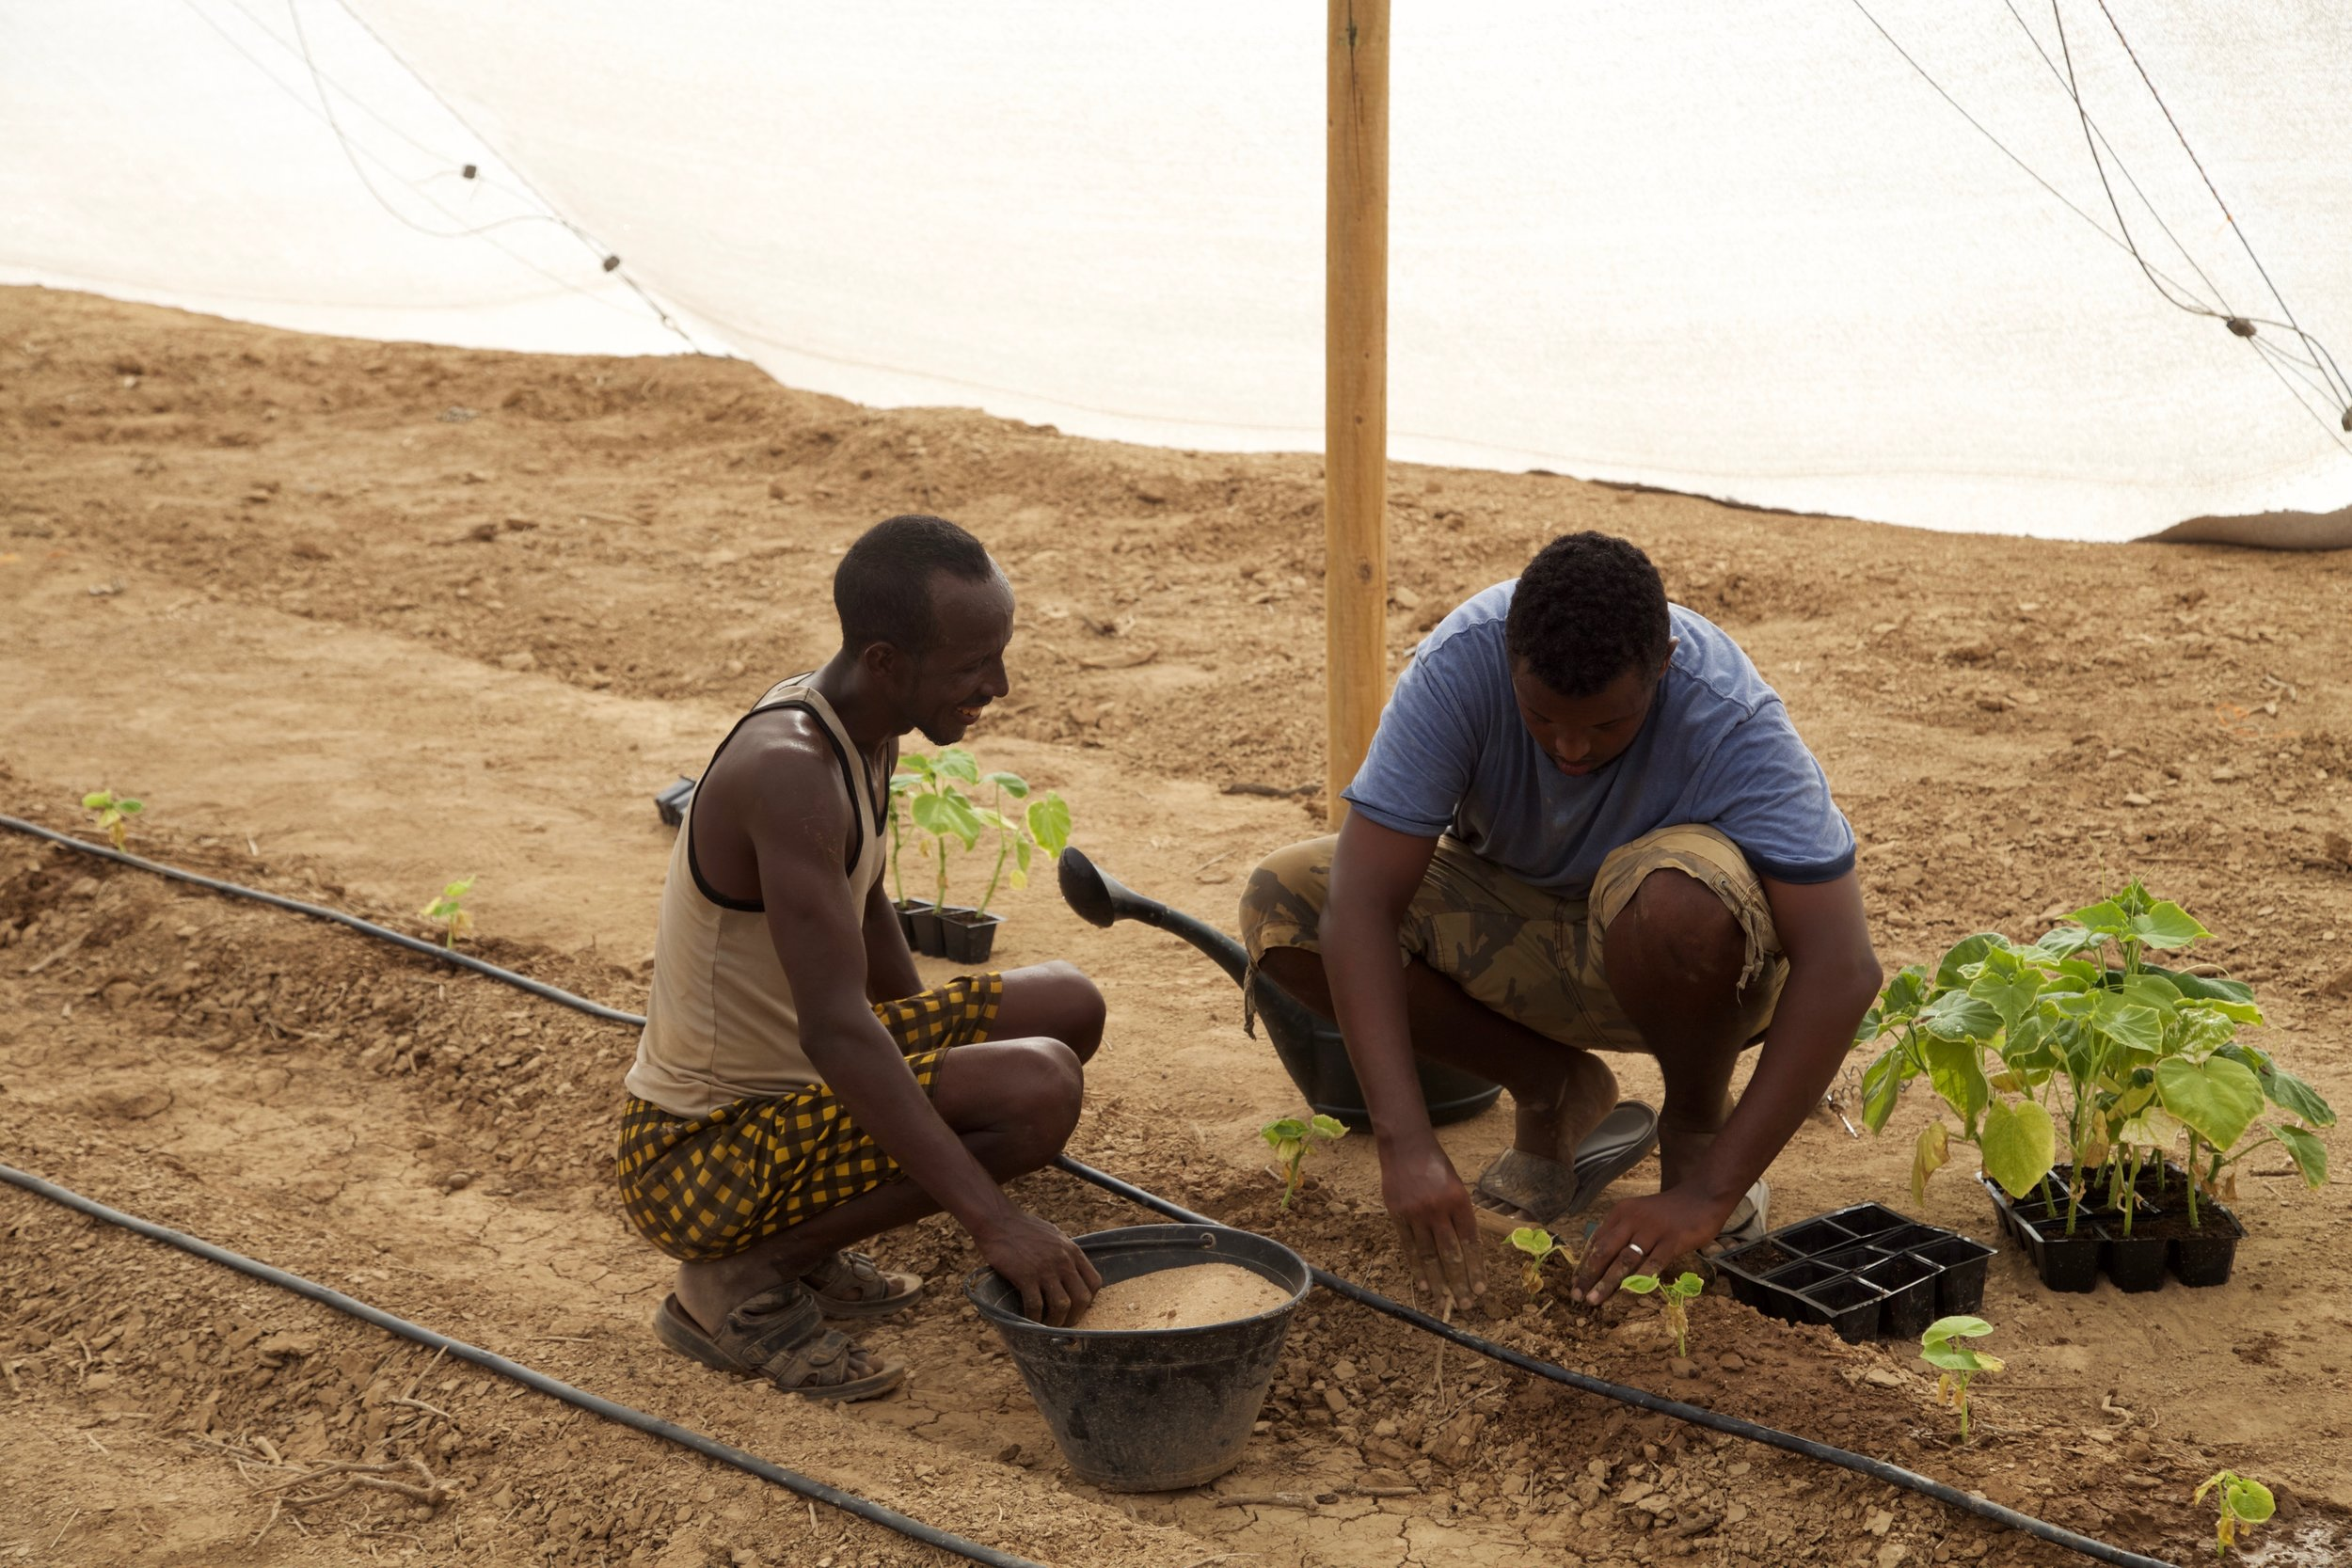 Transplanting the crops